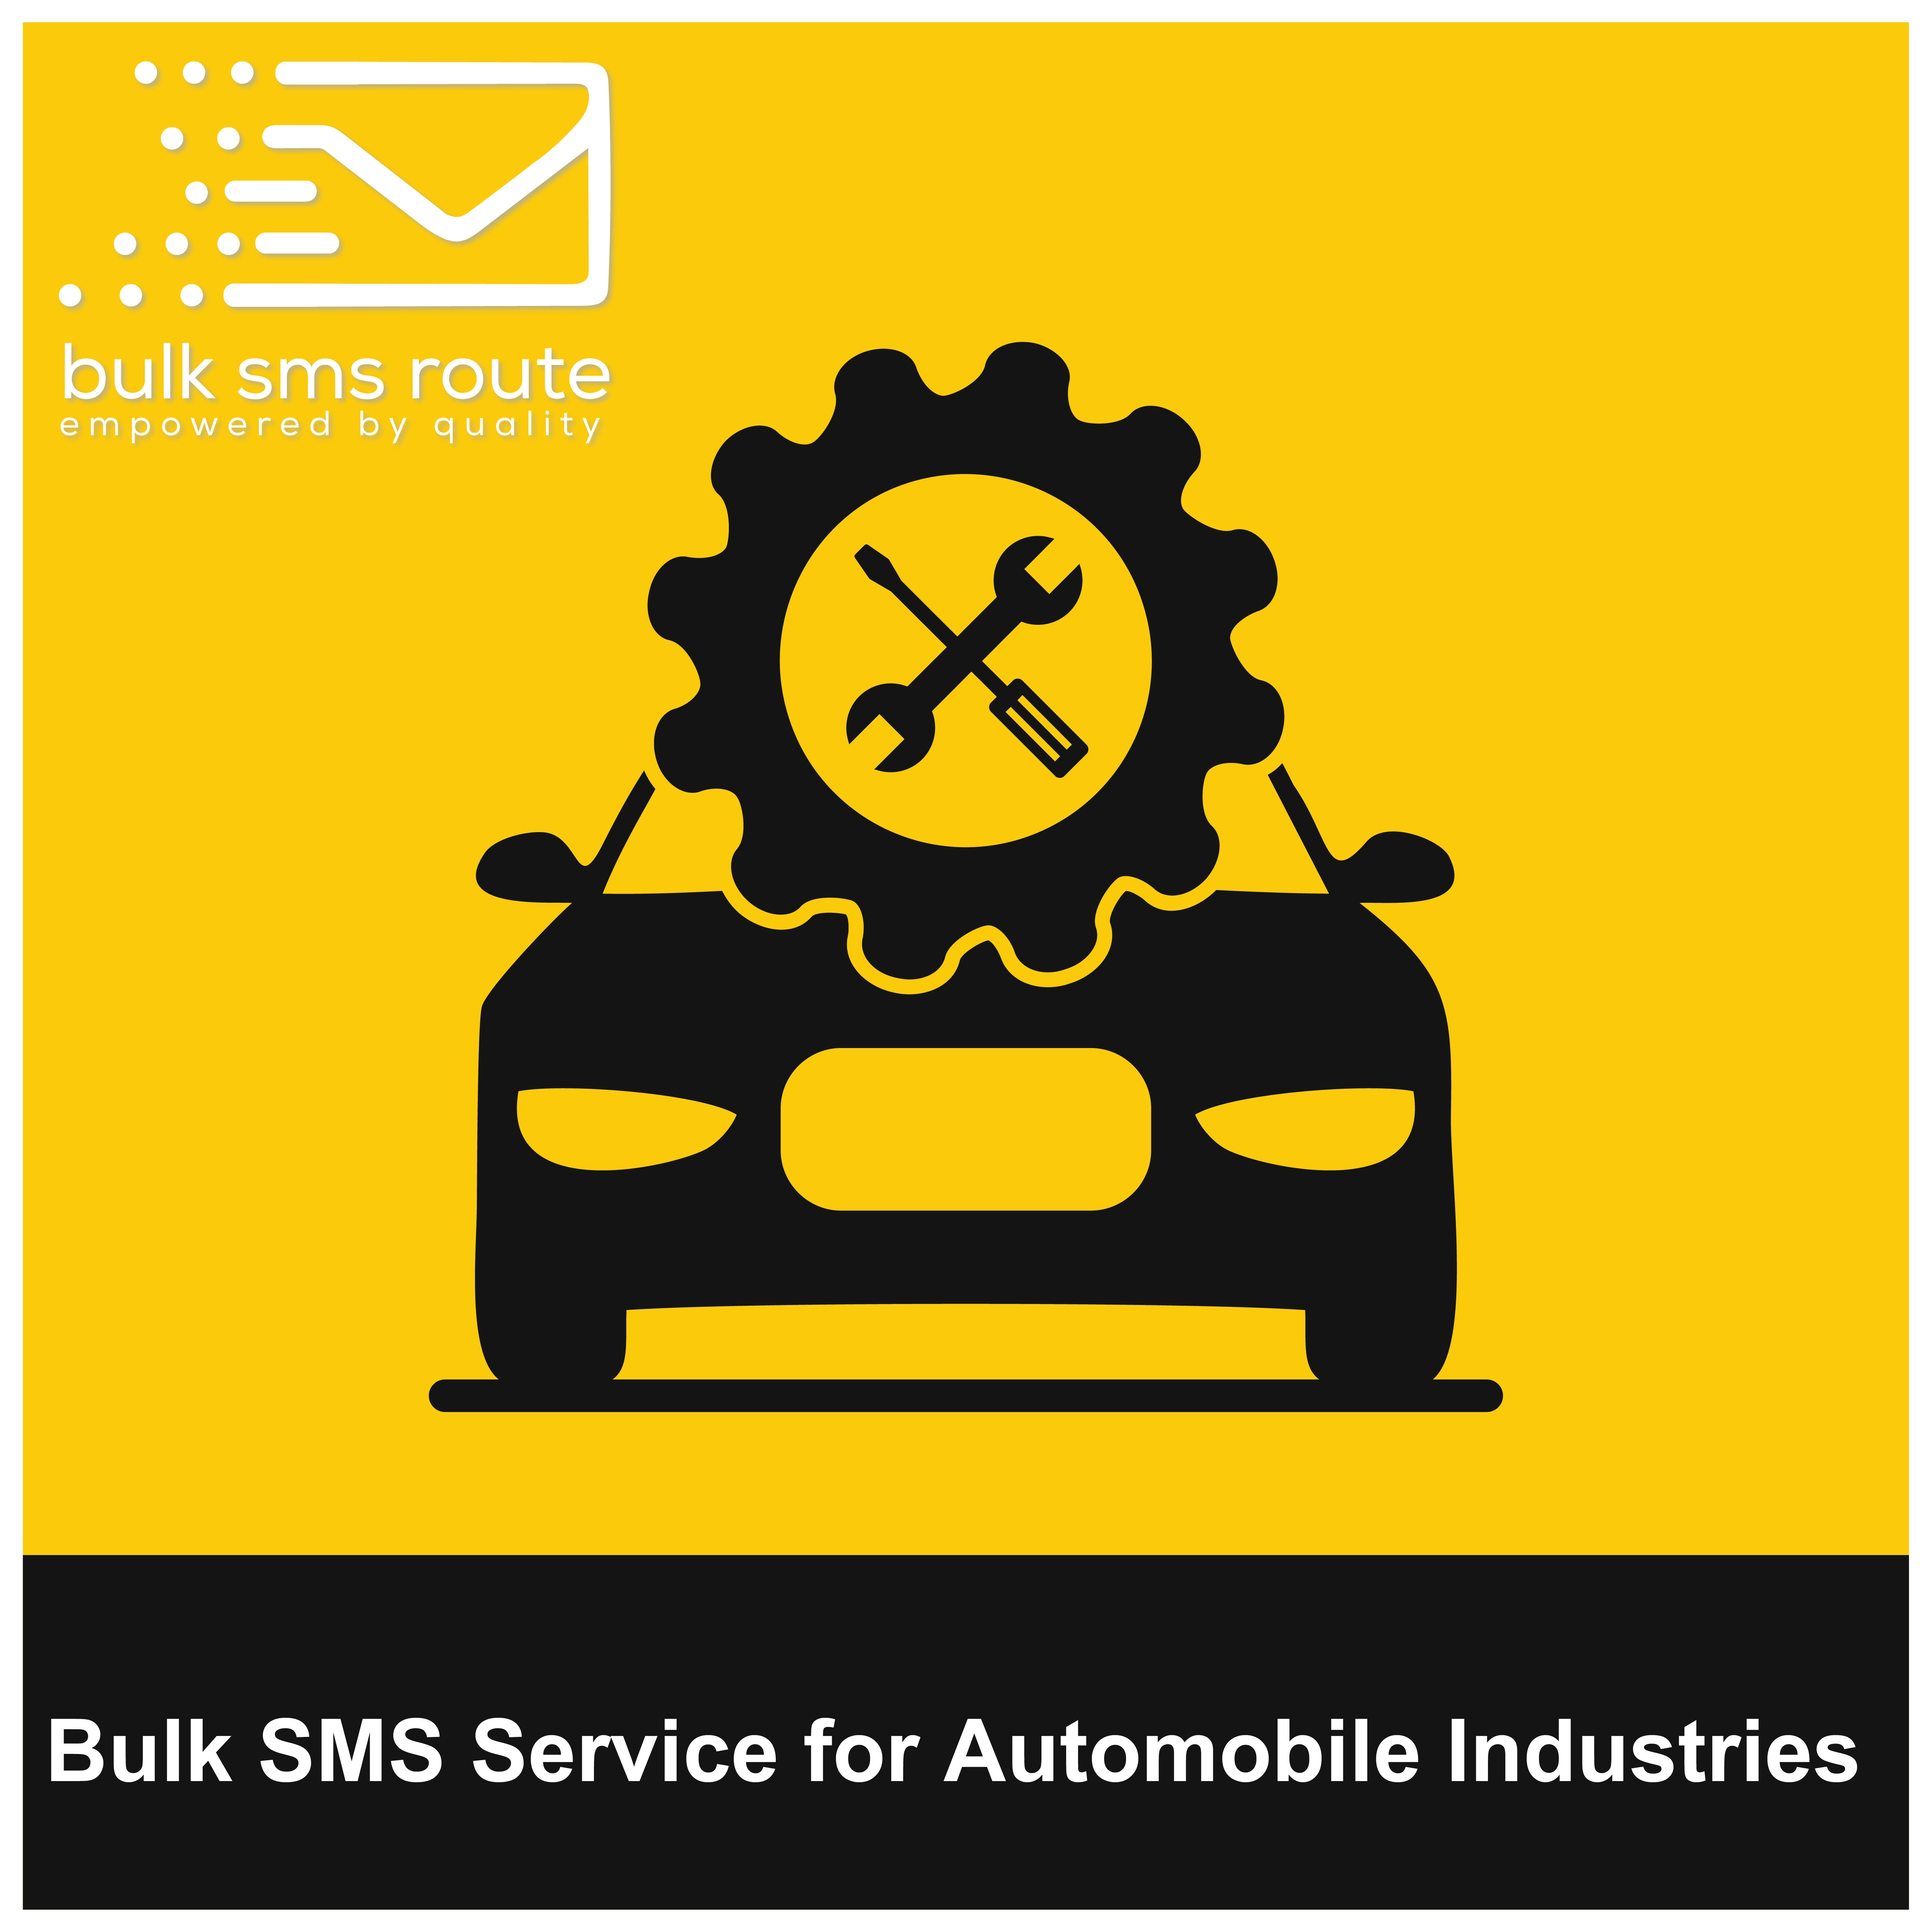 bulksmsroute.com - Bulk SMS Service For Automobile Industries